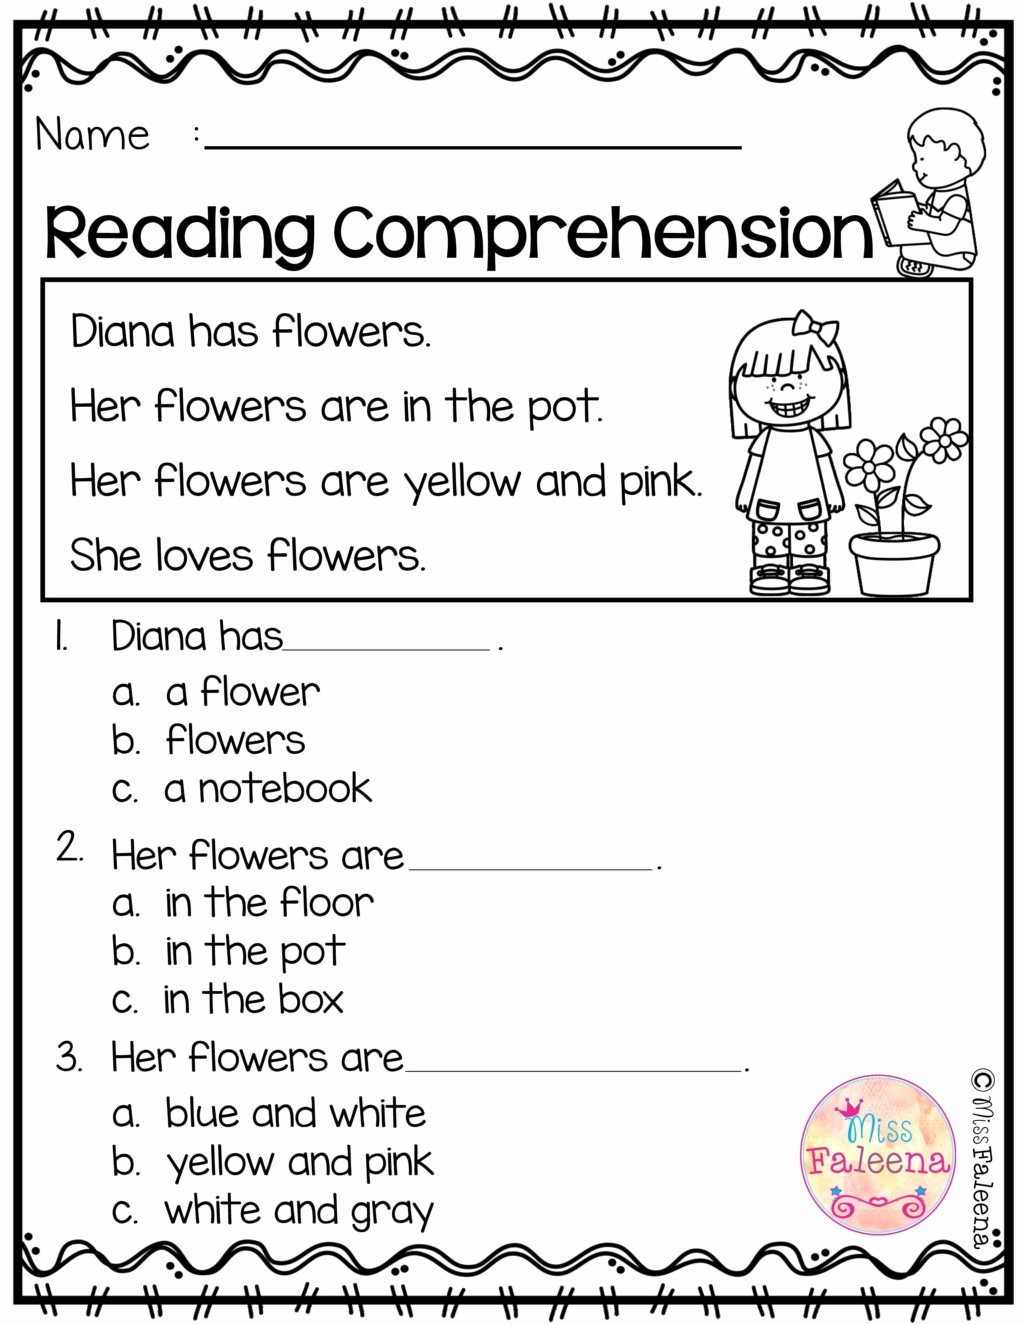 Worksheets for Preschoolers Reading Beautiful Worksheet Free Reading Prehension Worksheet